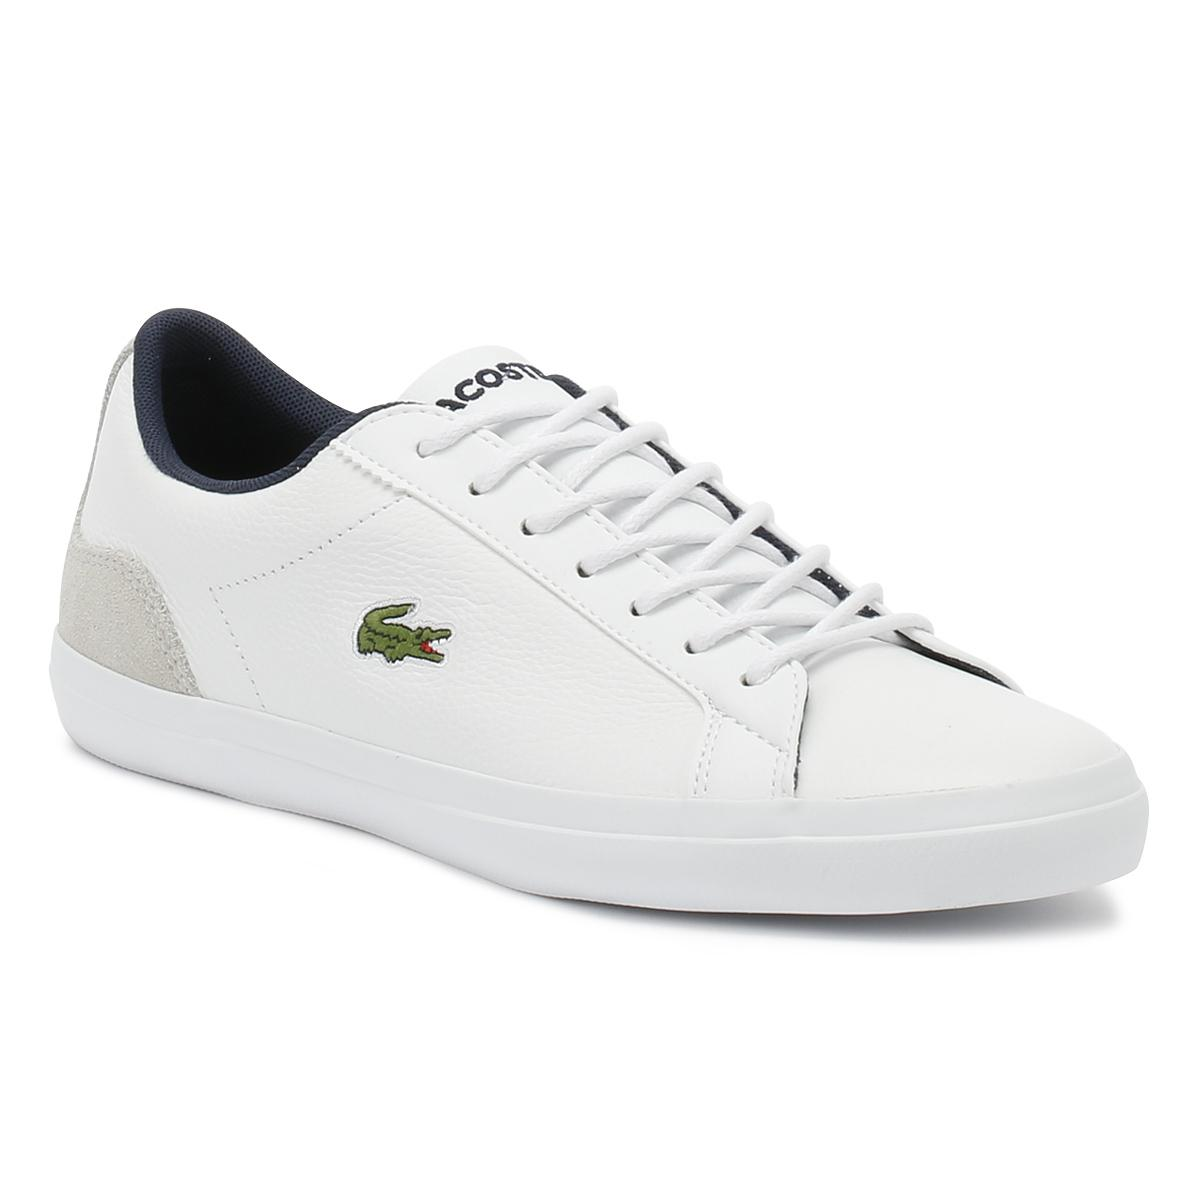 6e8a9aa5118f Lacoste Mens White Lerond 318 3 Trainers in White for Men - Lyst